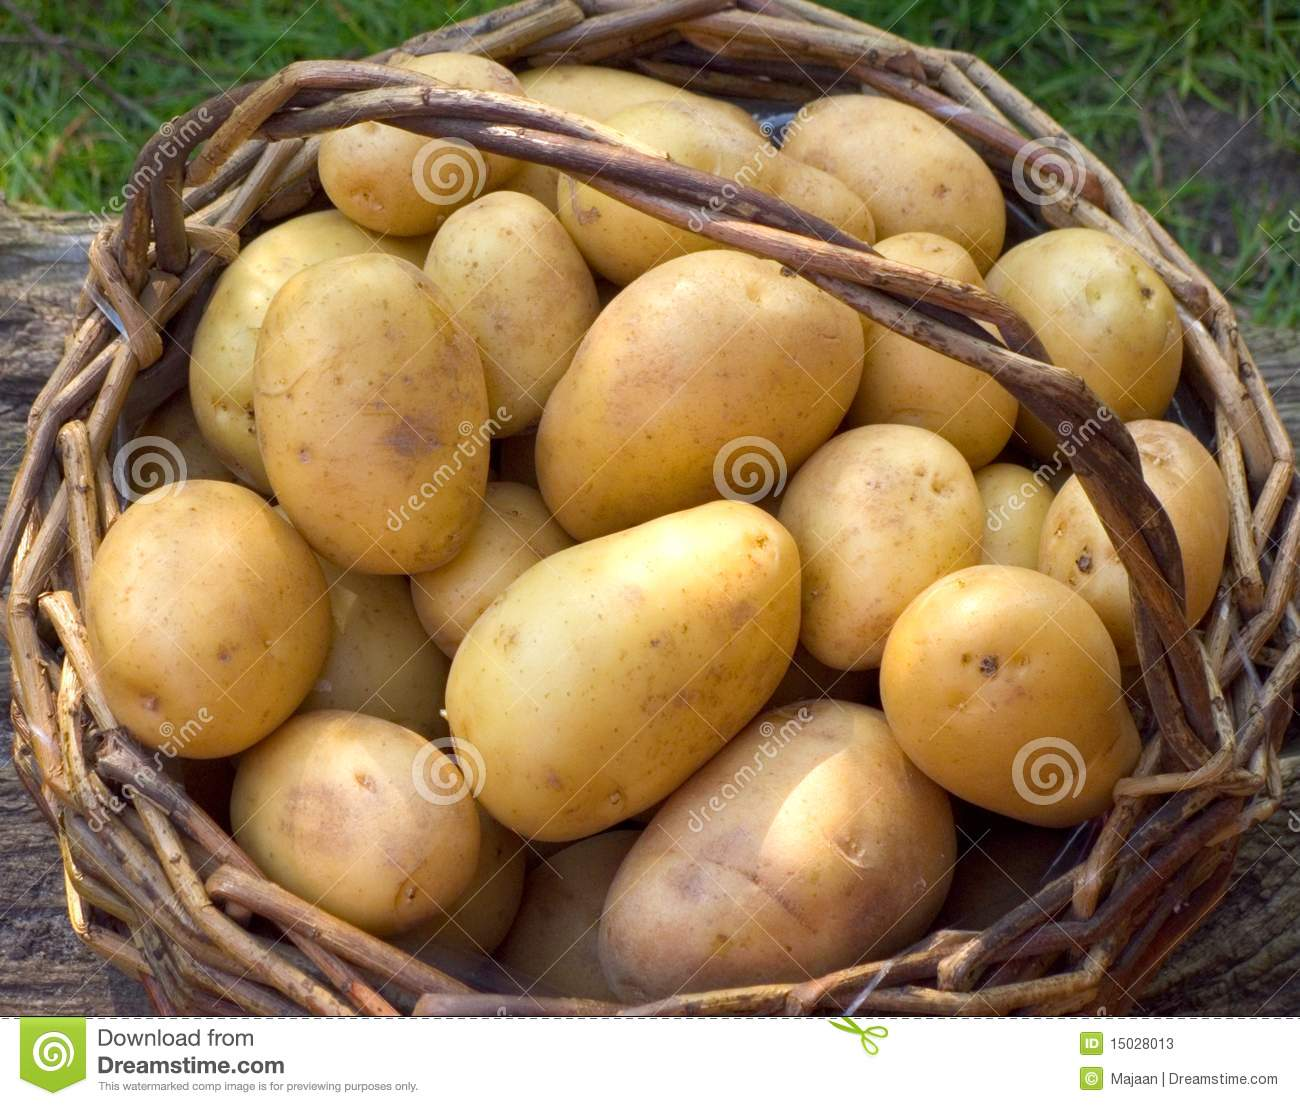 Basket with potatoes